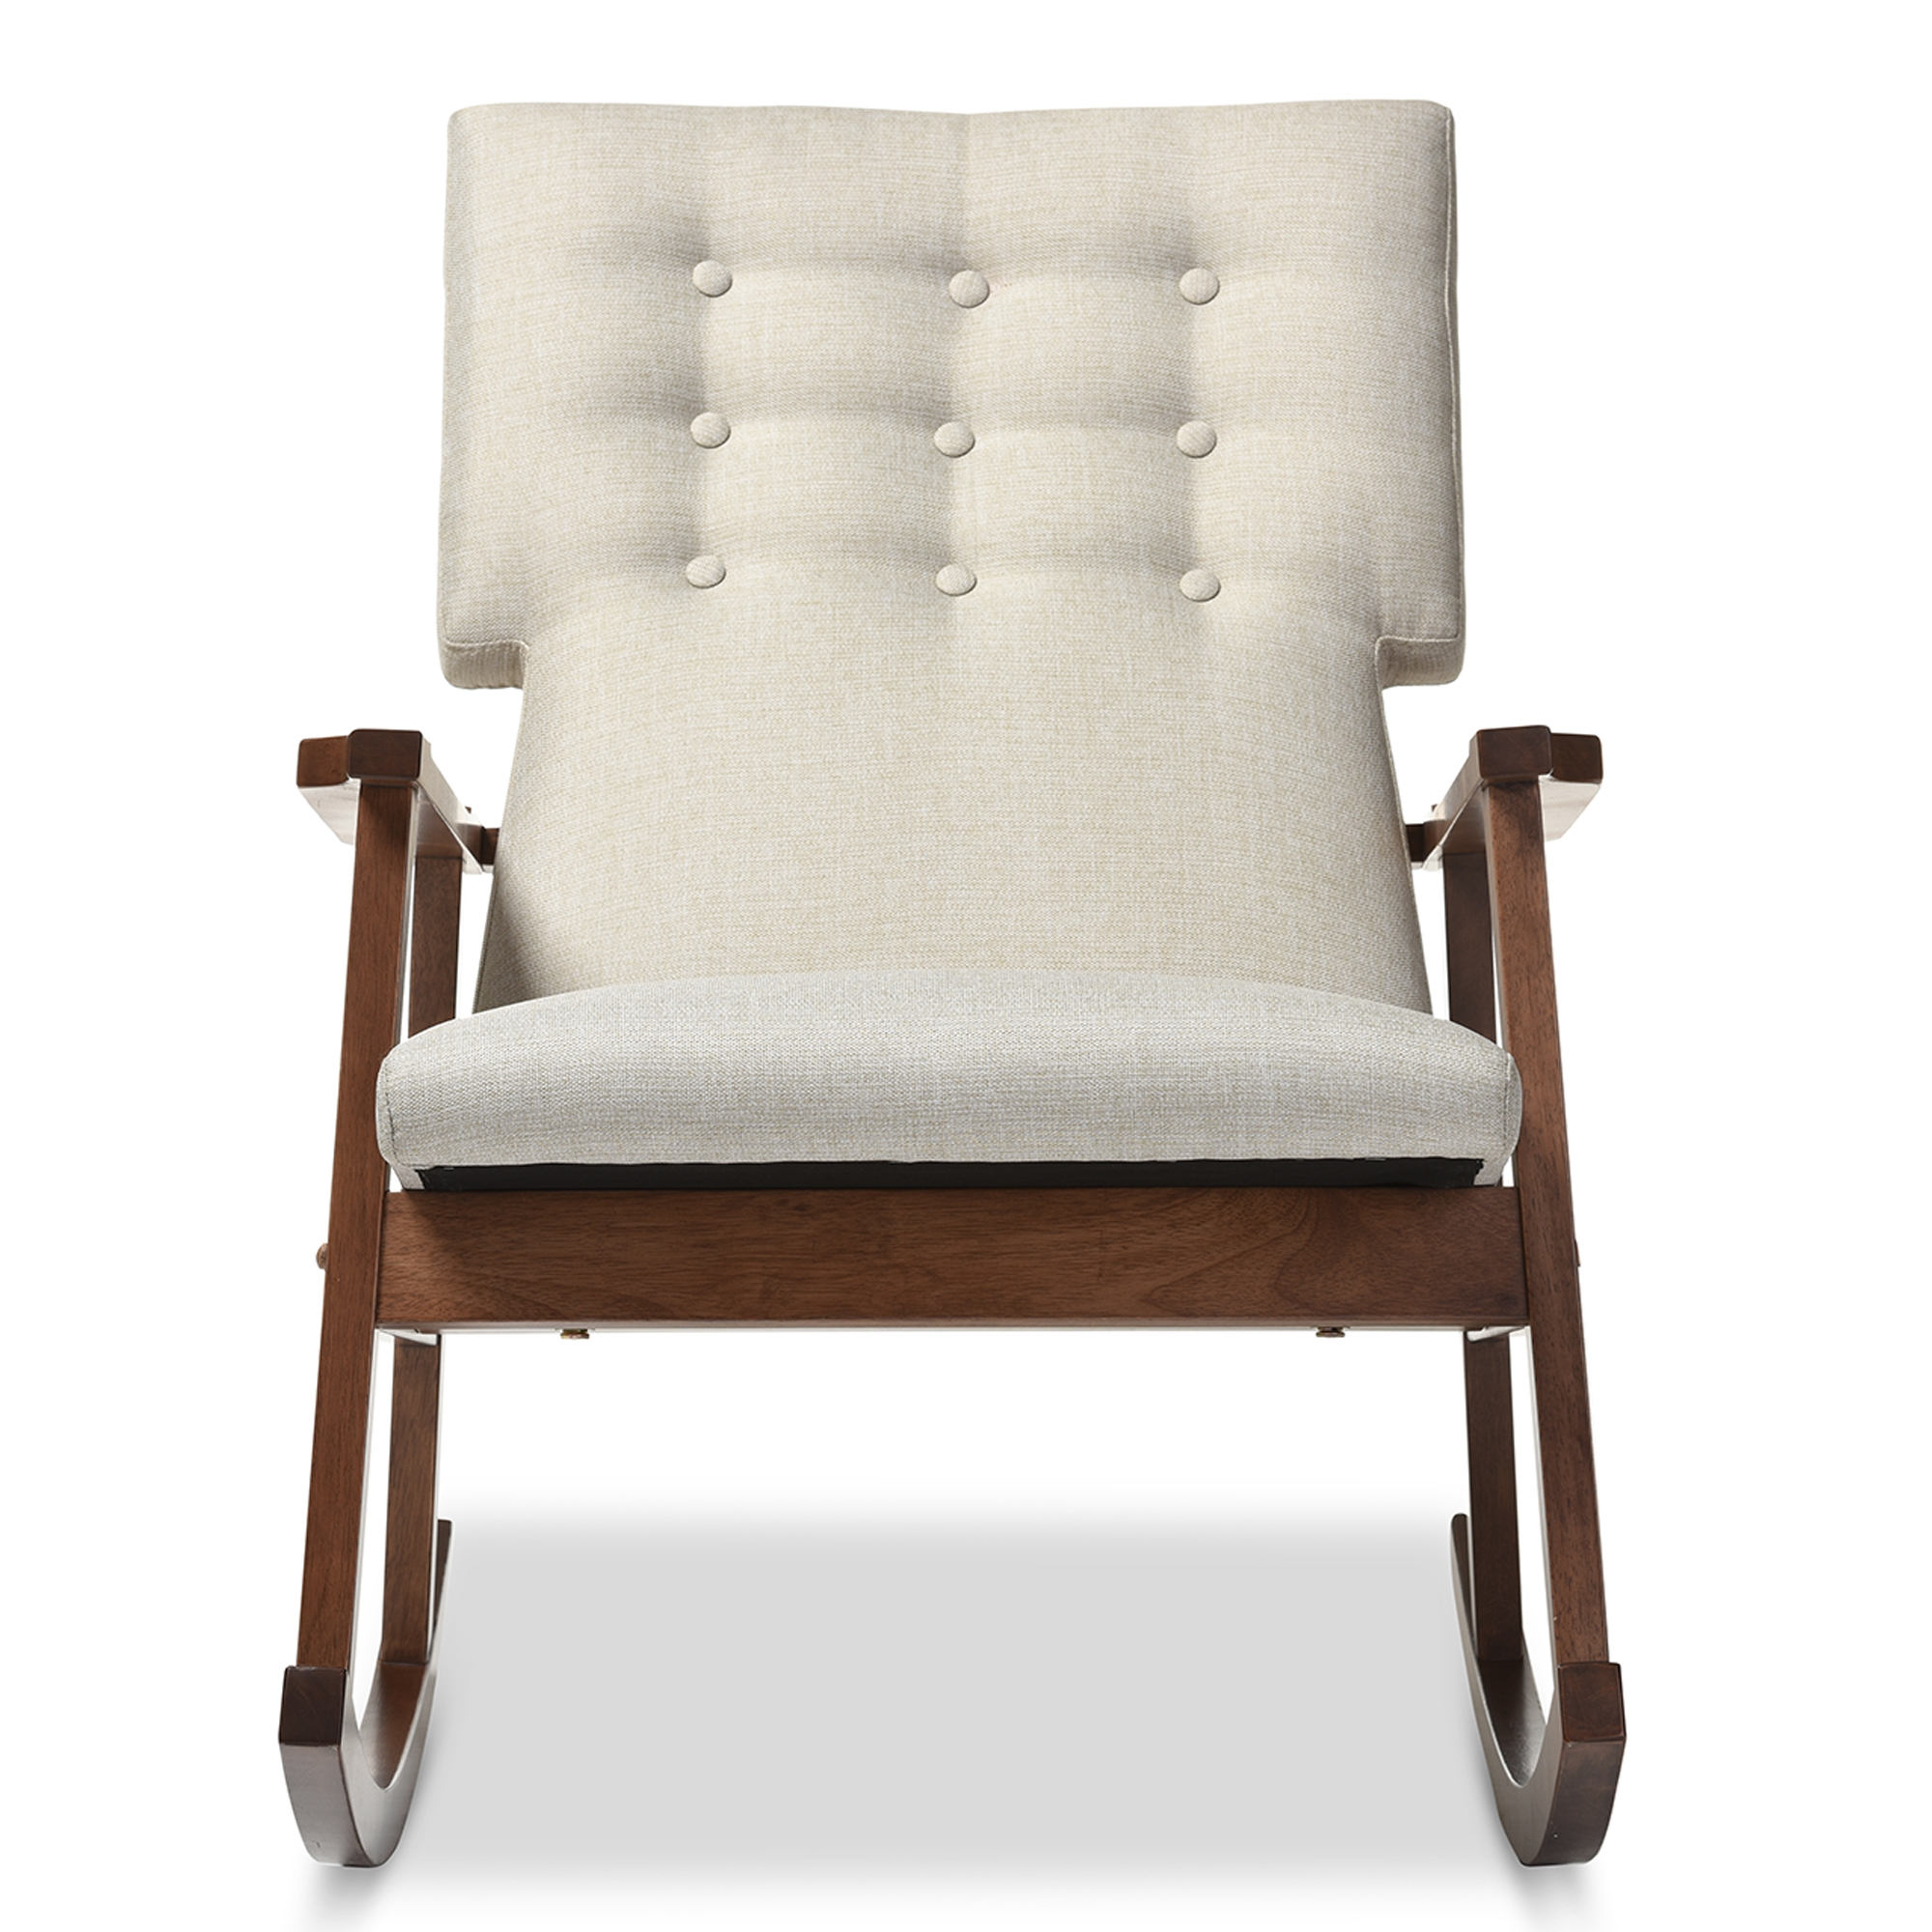 Baxton Studio Agatha Mid Century Modern Light Beige Fabric Upholstered  Button Tufted Rocking Chair ...